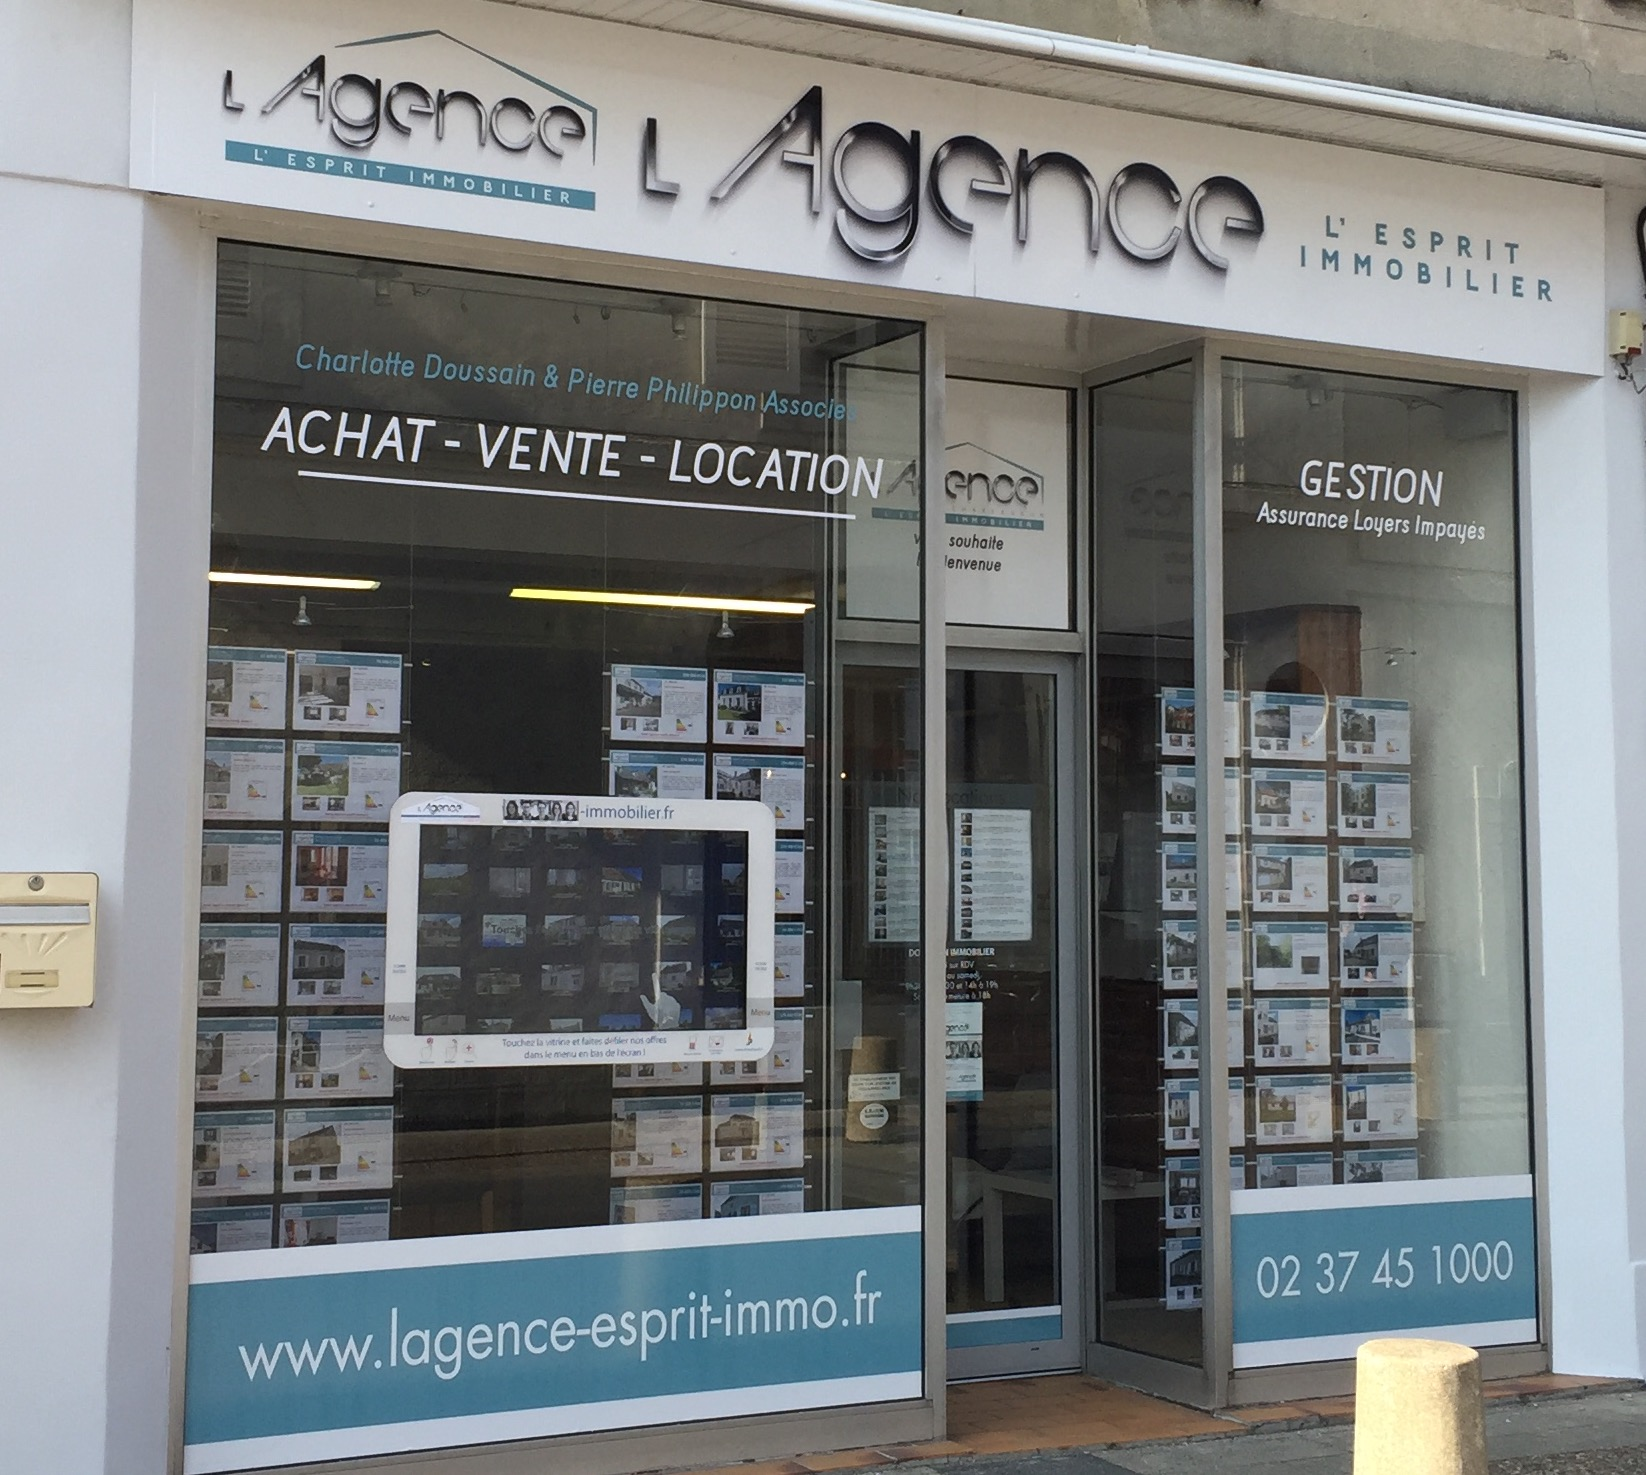 LAGENCE lesprit immobilier